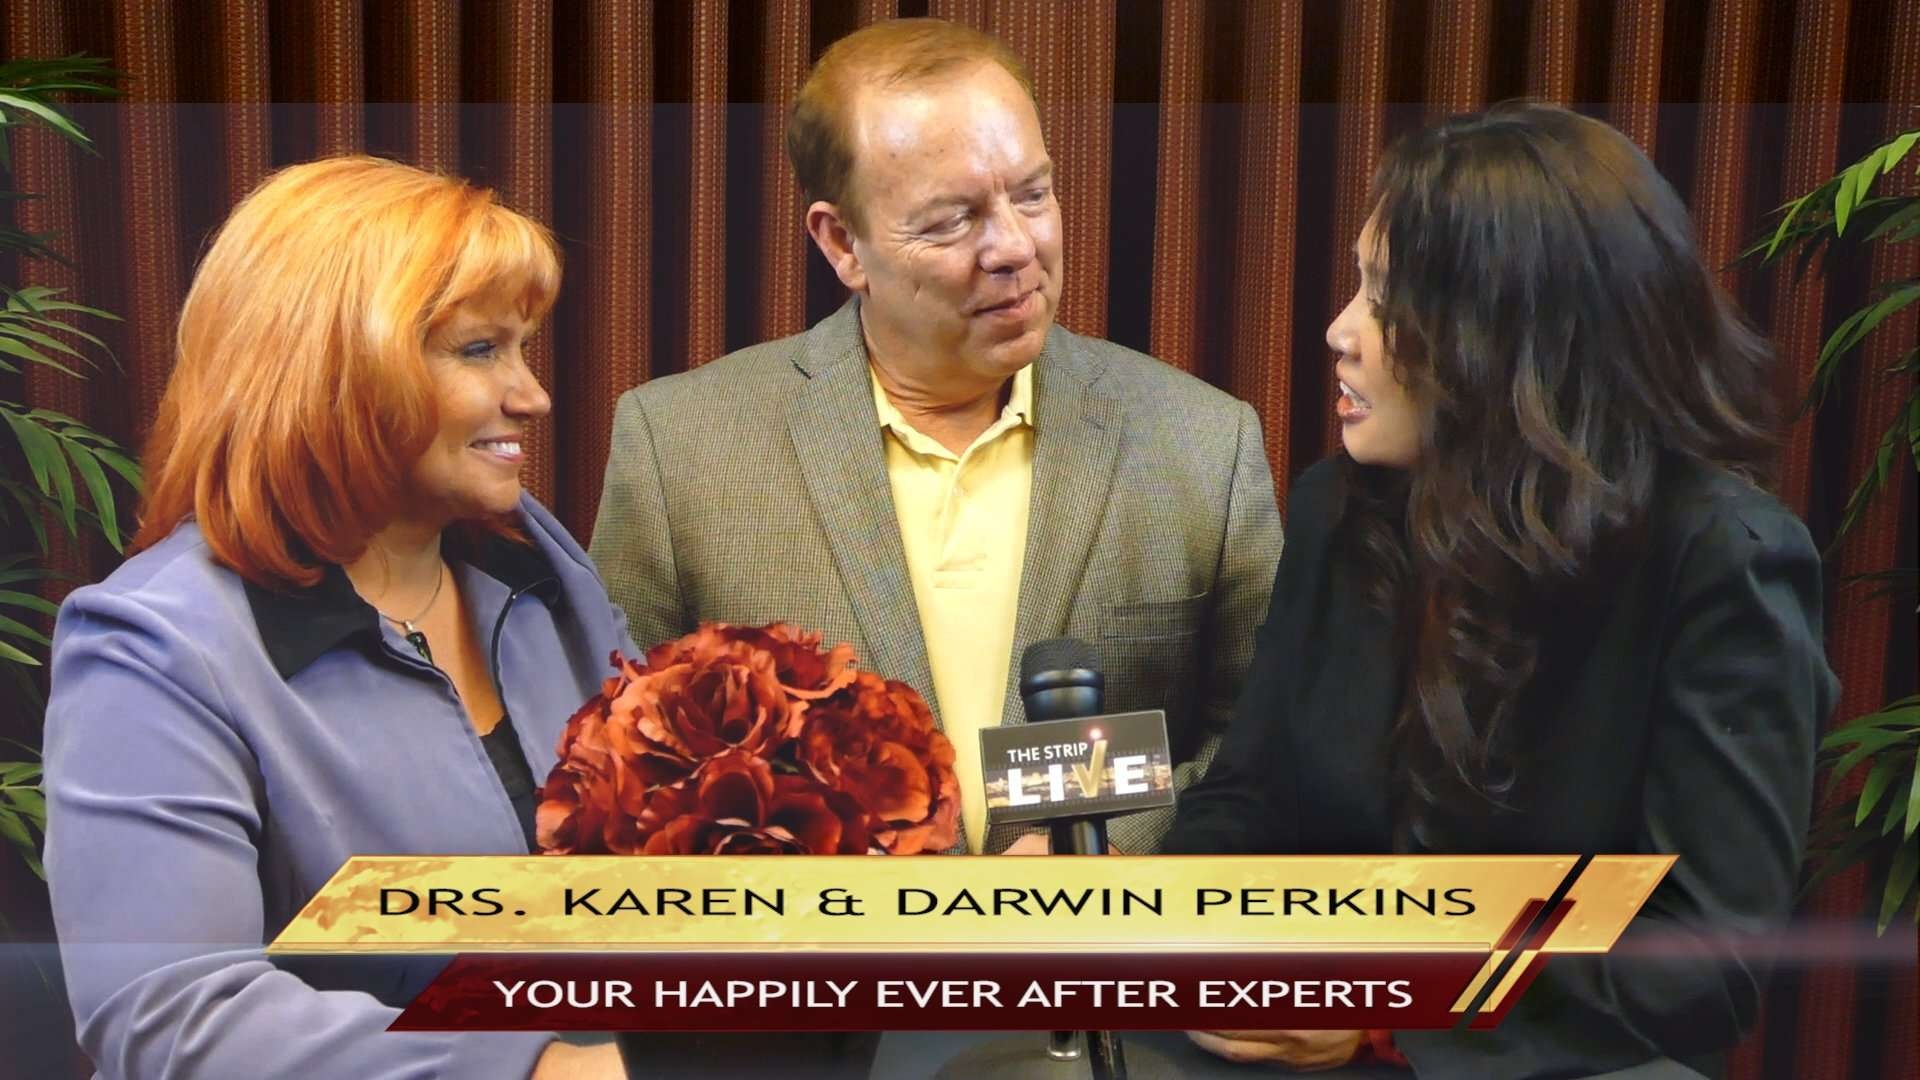 The magic formula to living happy and stress free with stress management experts Dr. Karen and Dr. Darwin Perkins